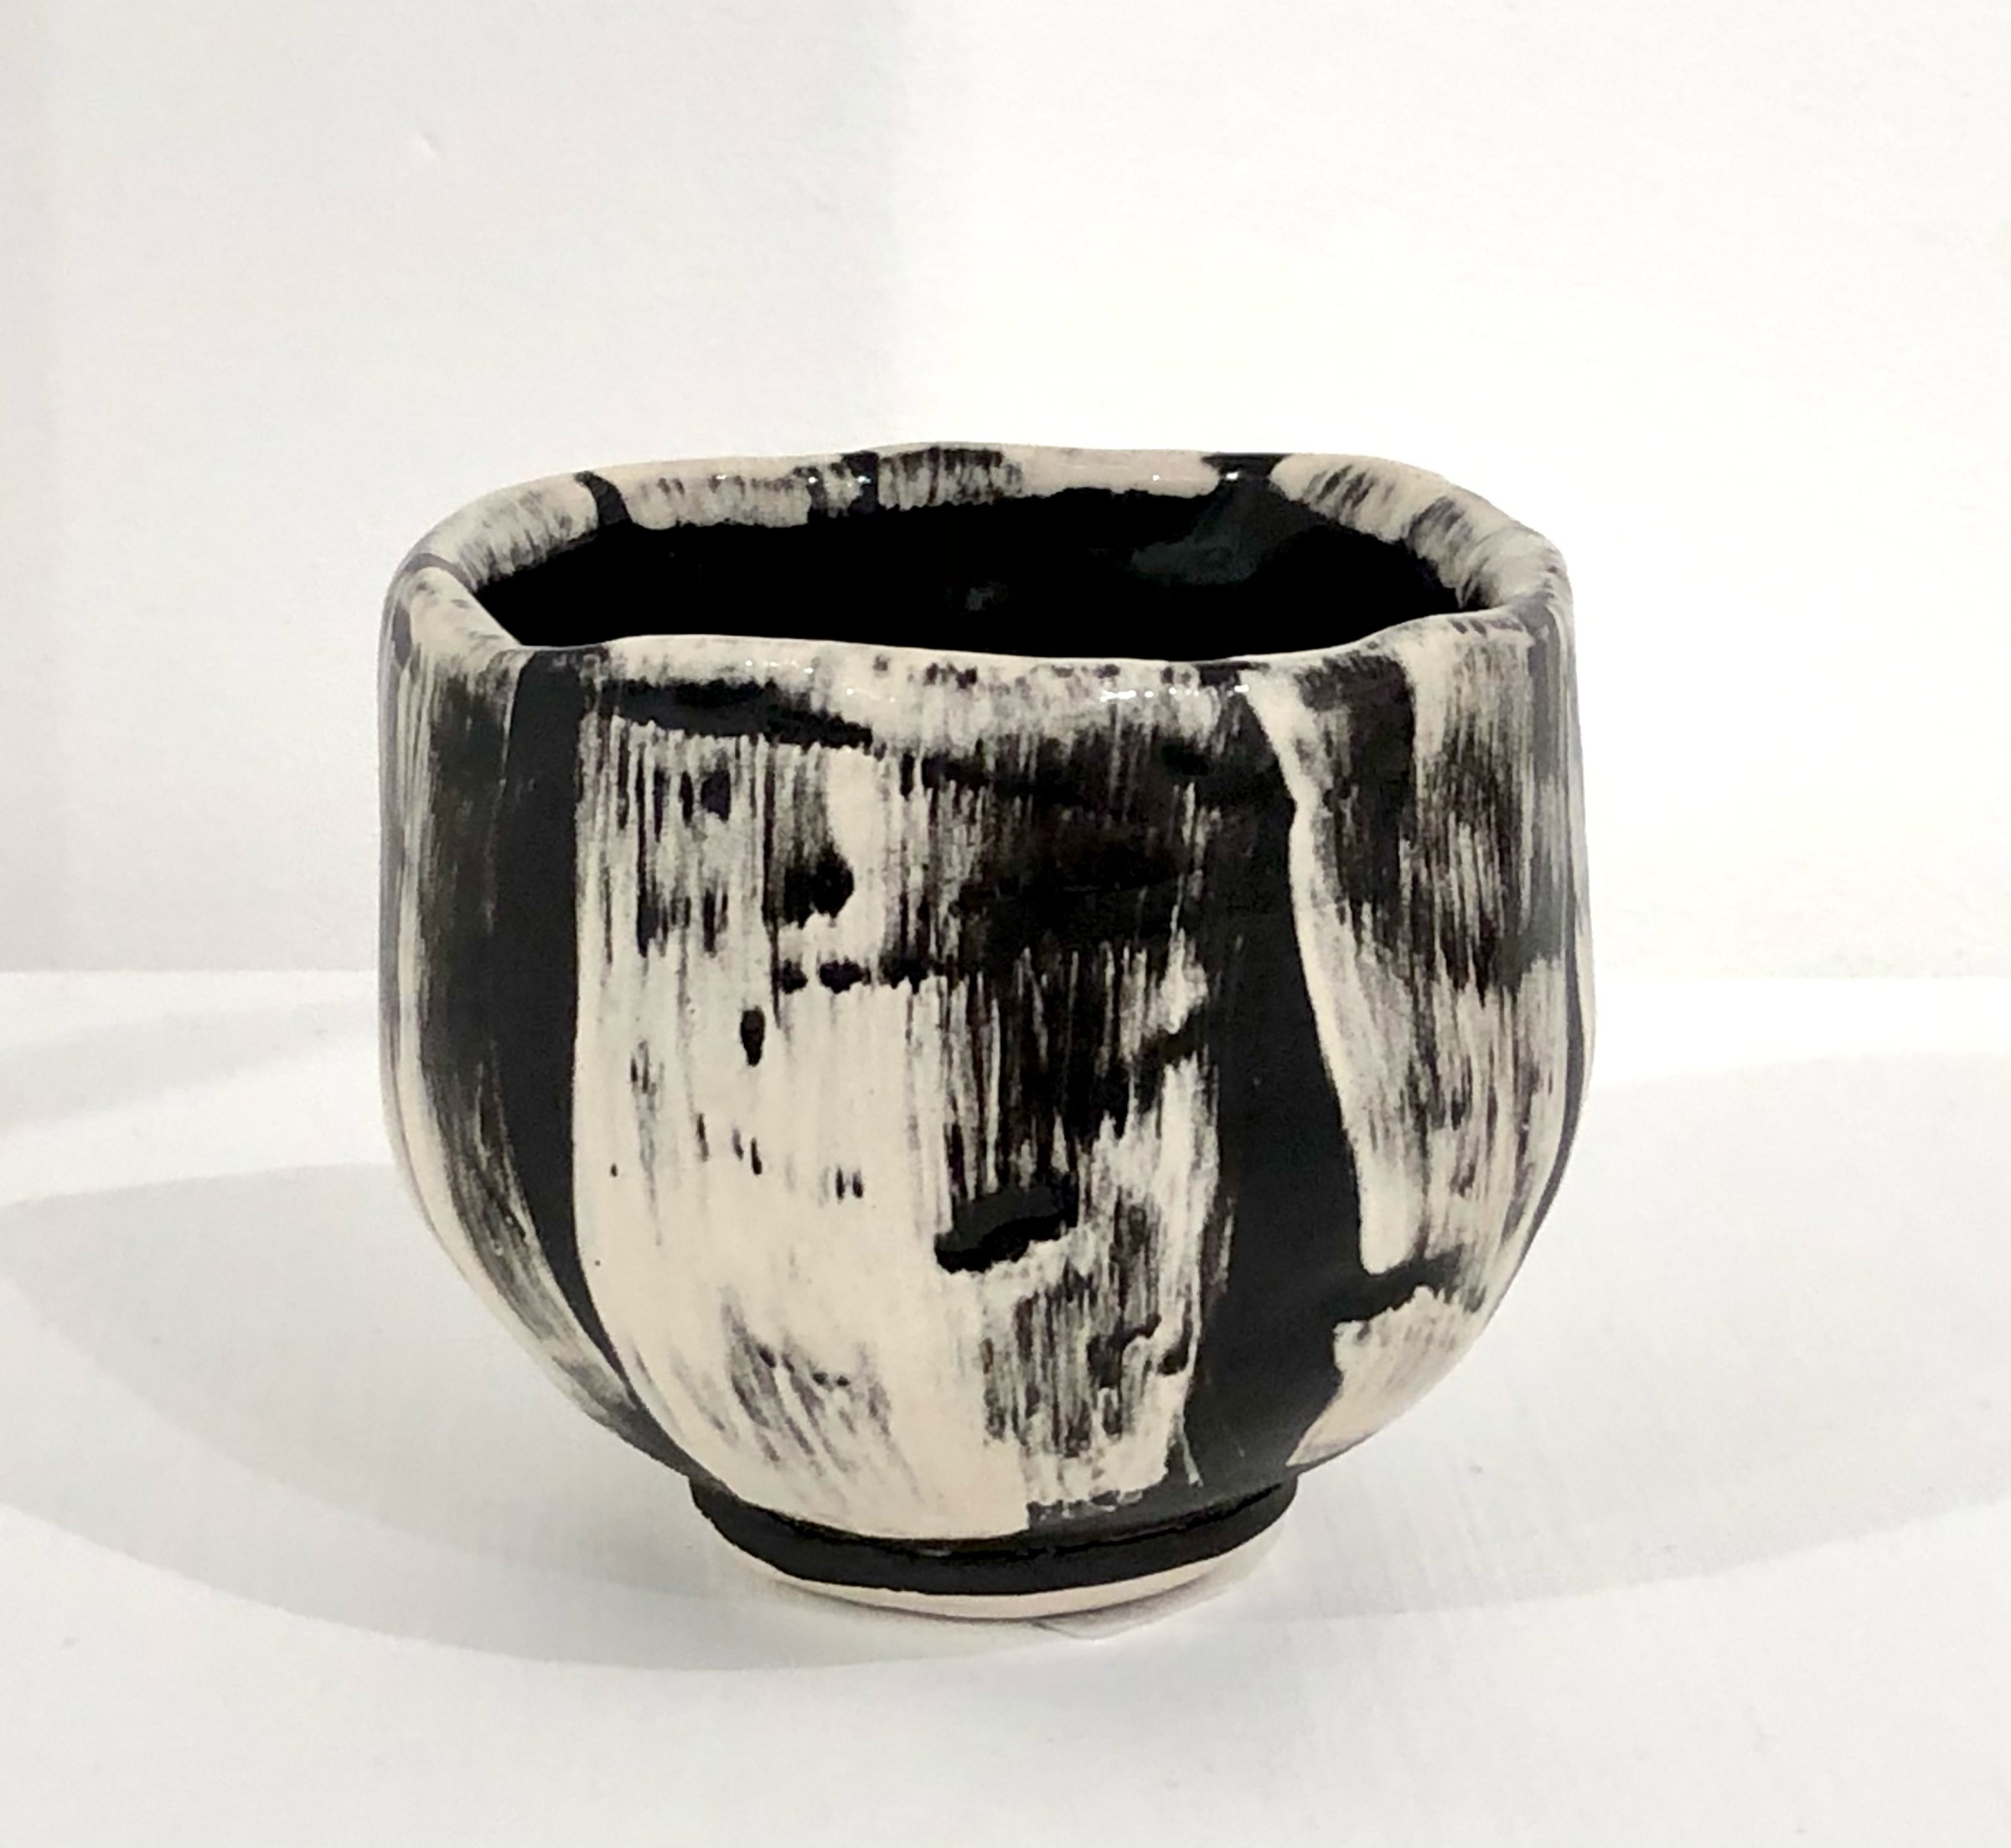 "<span class=""link fancybox-details-link""><a href=""/artists/100-john-pollex/works/7418-john-pollex-tea-bowl-hand-built-2020/"">View Detail Page</a></span><div class=""artist""><strong>John Pollex</strong></div> <div class=""title""><em>Tea bowl (hand built)</em>, 2020</div> <div class=""signed_and_dated"">impressed with the artist's seal mark 'JP'</div> <div class=""medium"">white earthenware decorated with coloured slips</div> <div class=""dimensions"">height. 9 cm x diameter. 9.5 cm</div><div class=""price"">£88.00</div><div class=""copyright_line"">Copyright The Artist</div>"